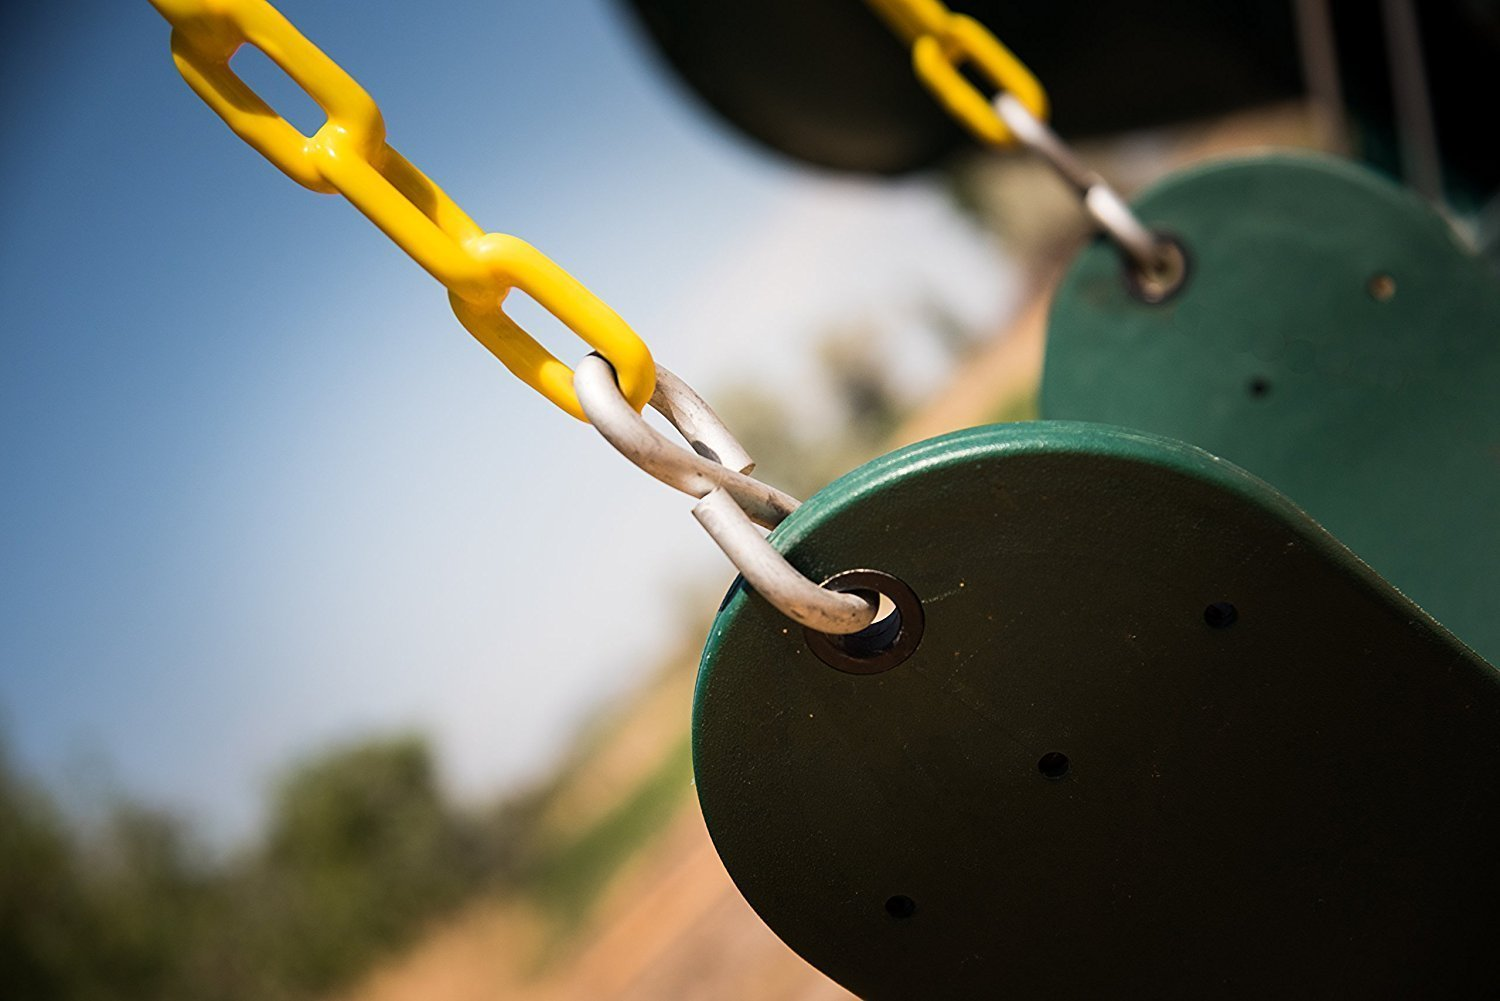 High Back Full Bucket Swing and Heavy Duty Swing Seat - Swing Set Accessories by Squirrel Products (Image #8)